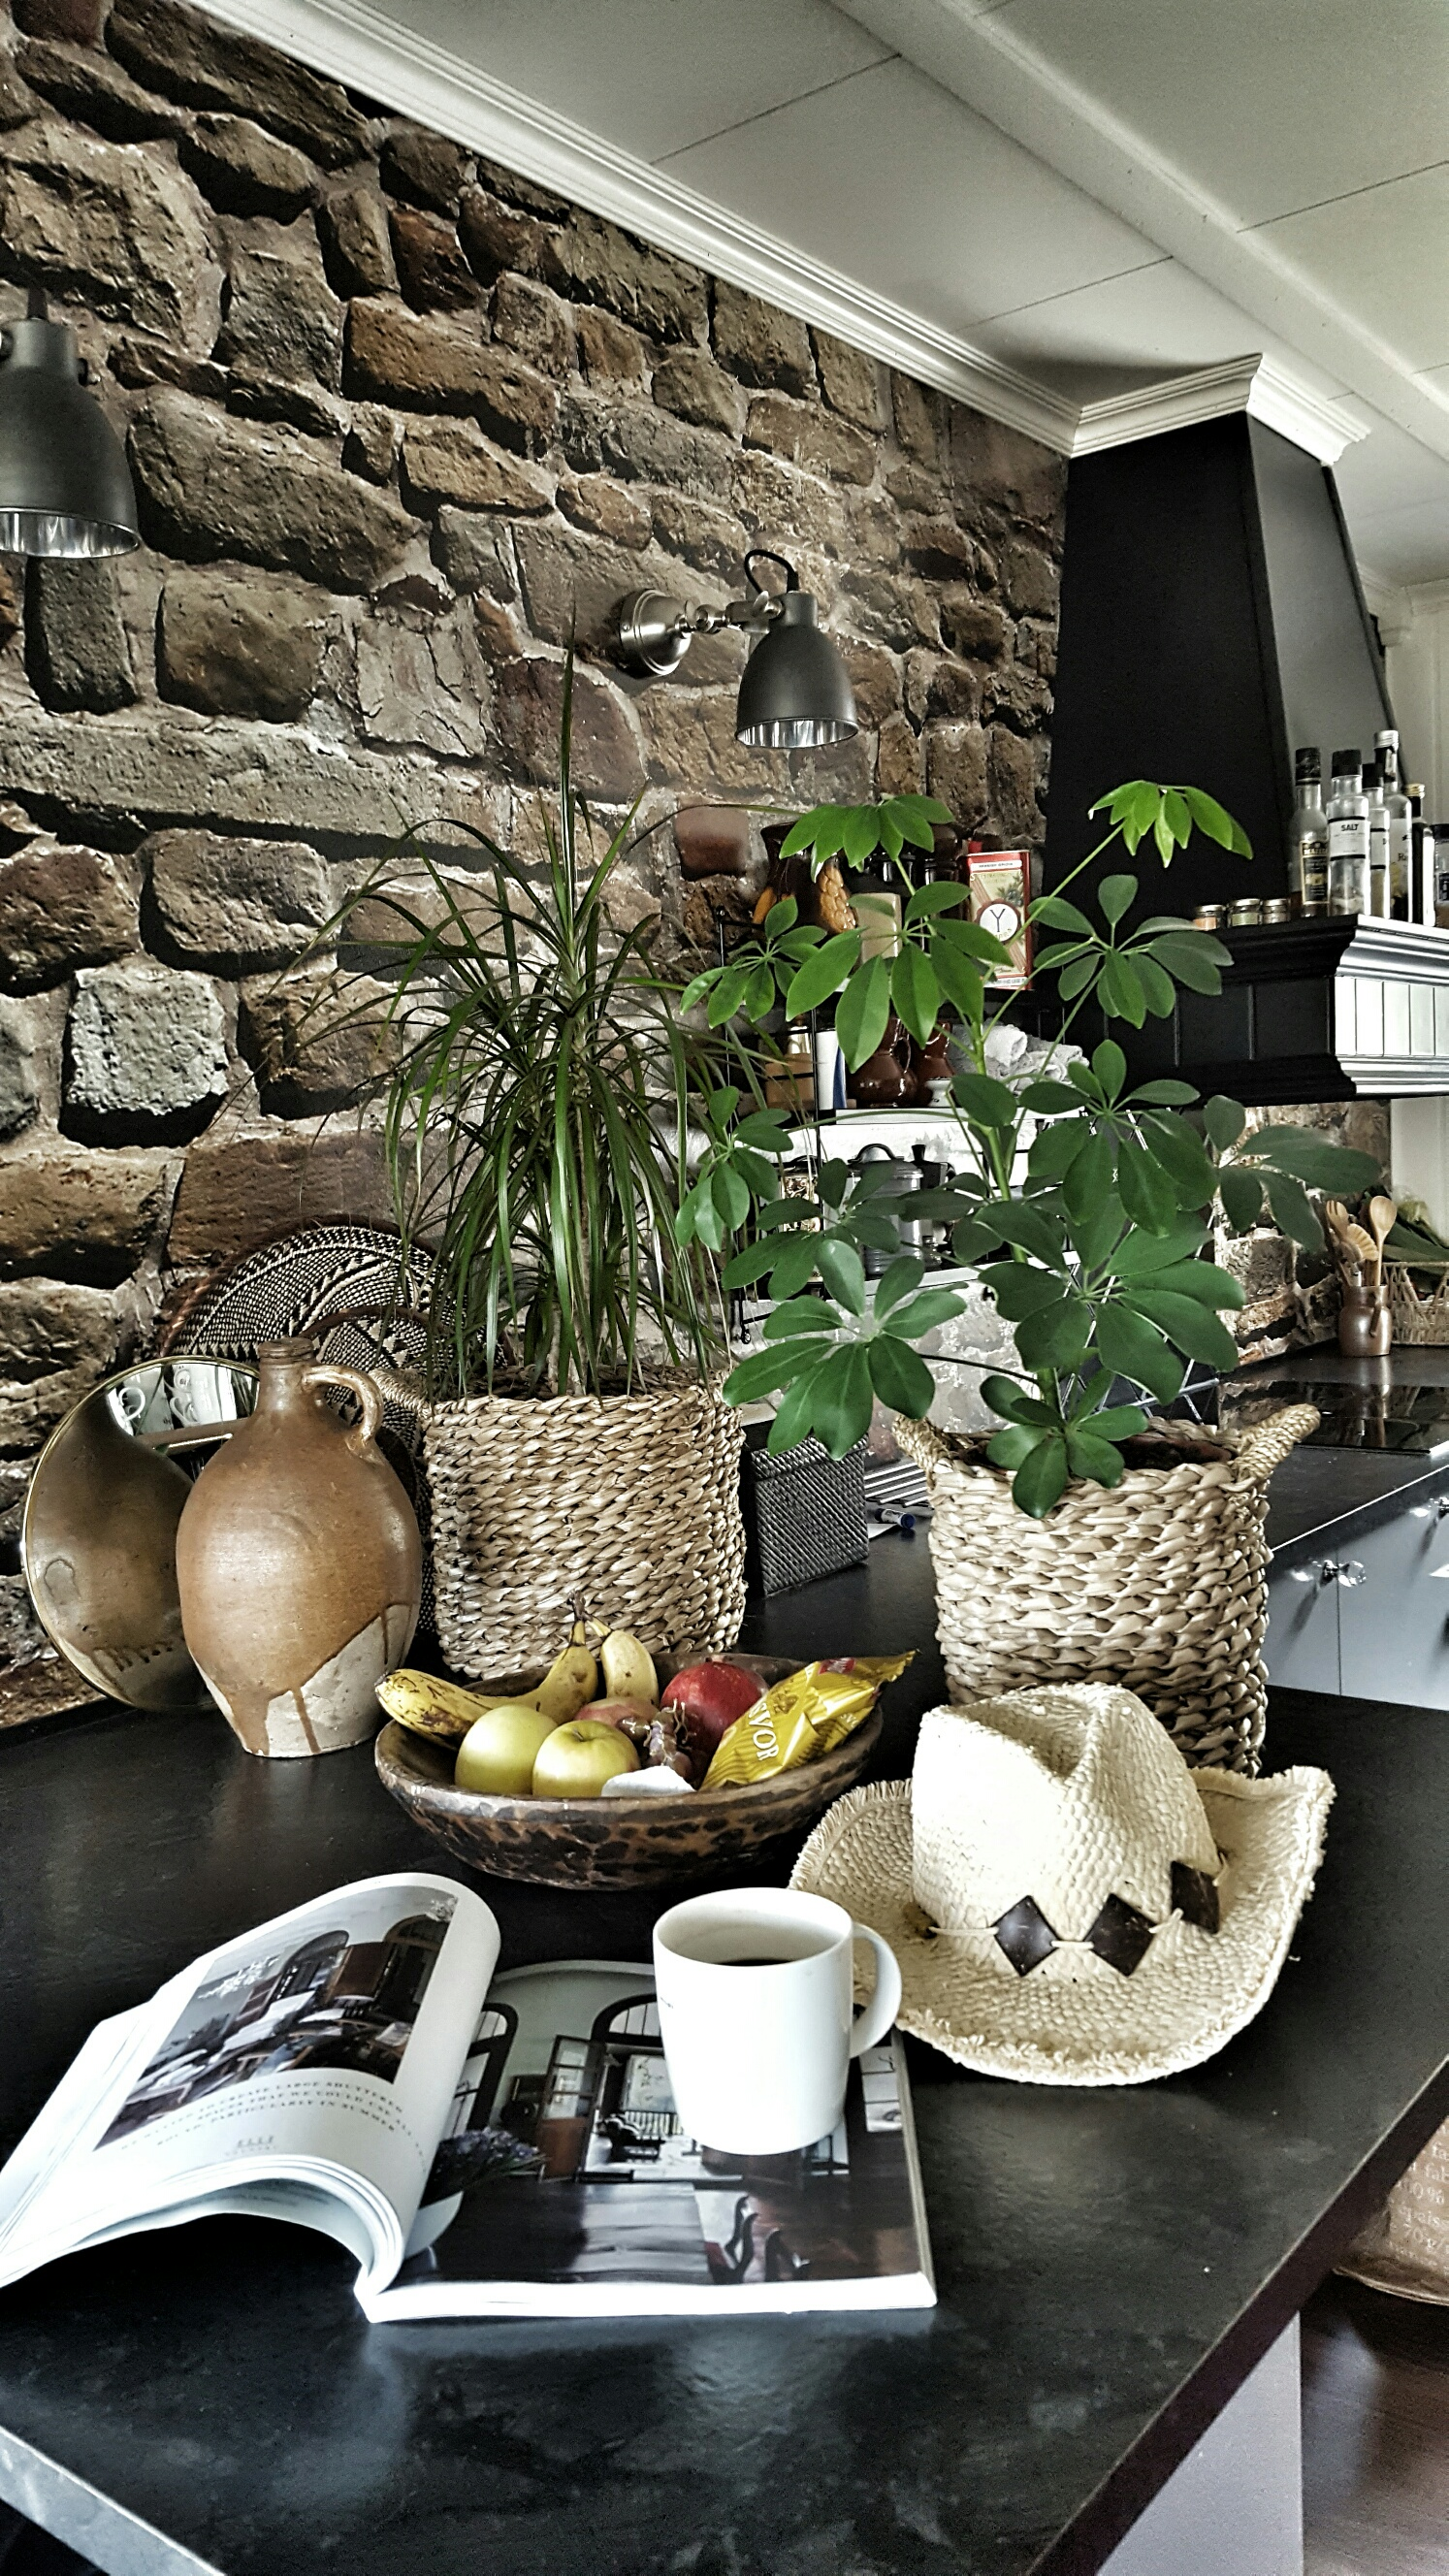 The Brick wall brings a wonderful texture to the kitchen